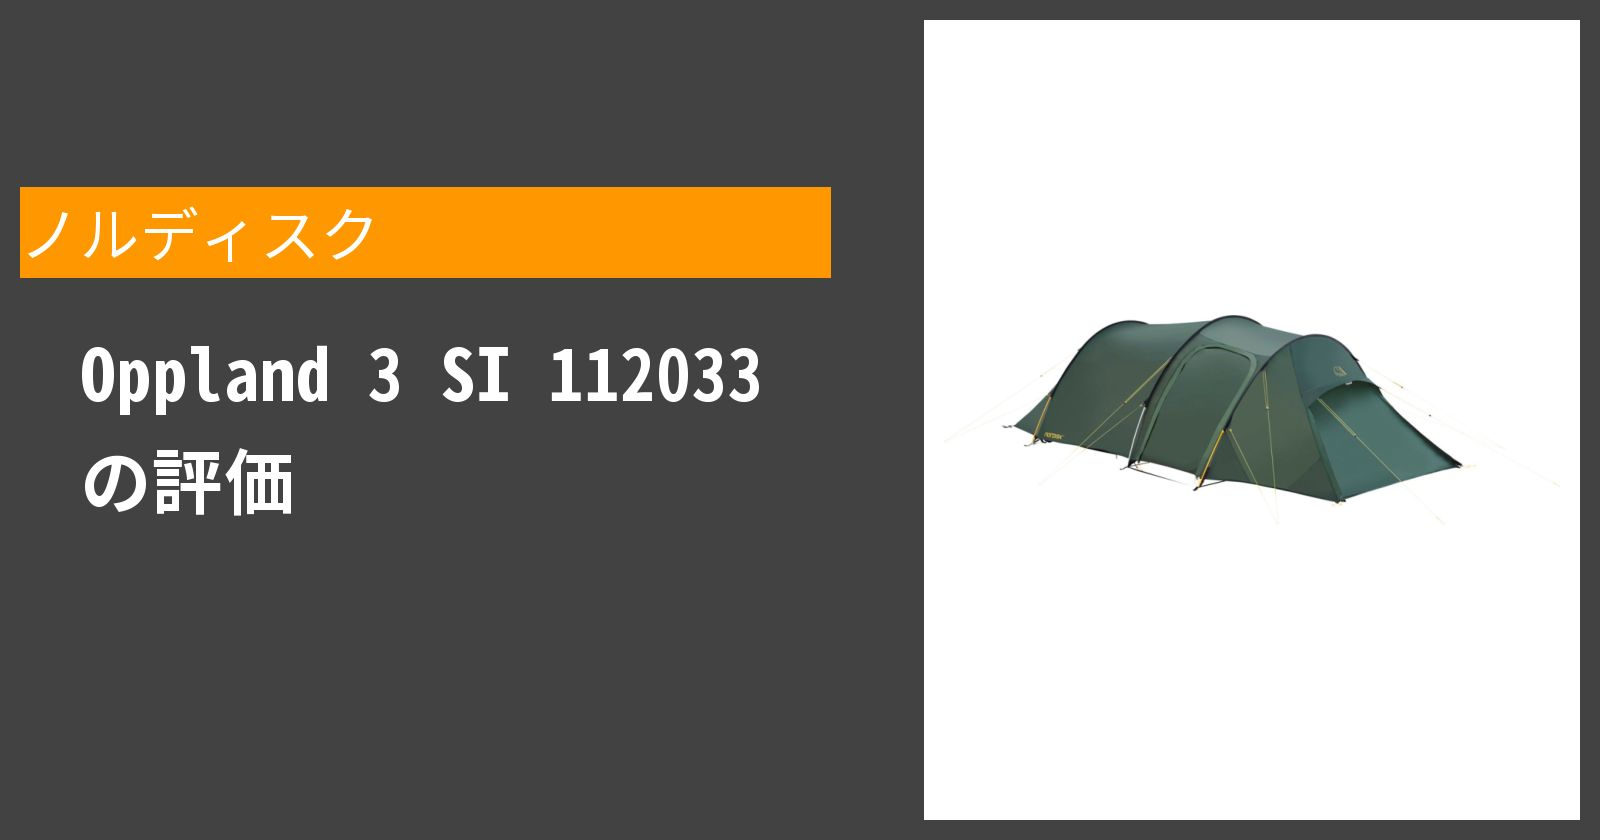 Oppland 3 SI 112033を徹底評価